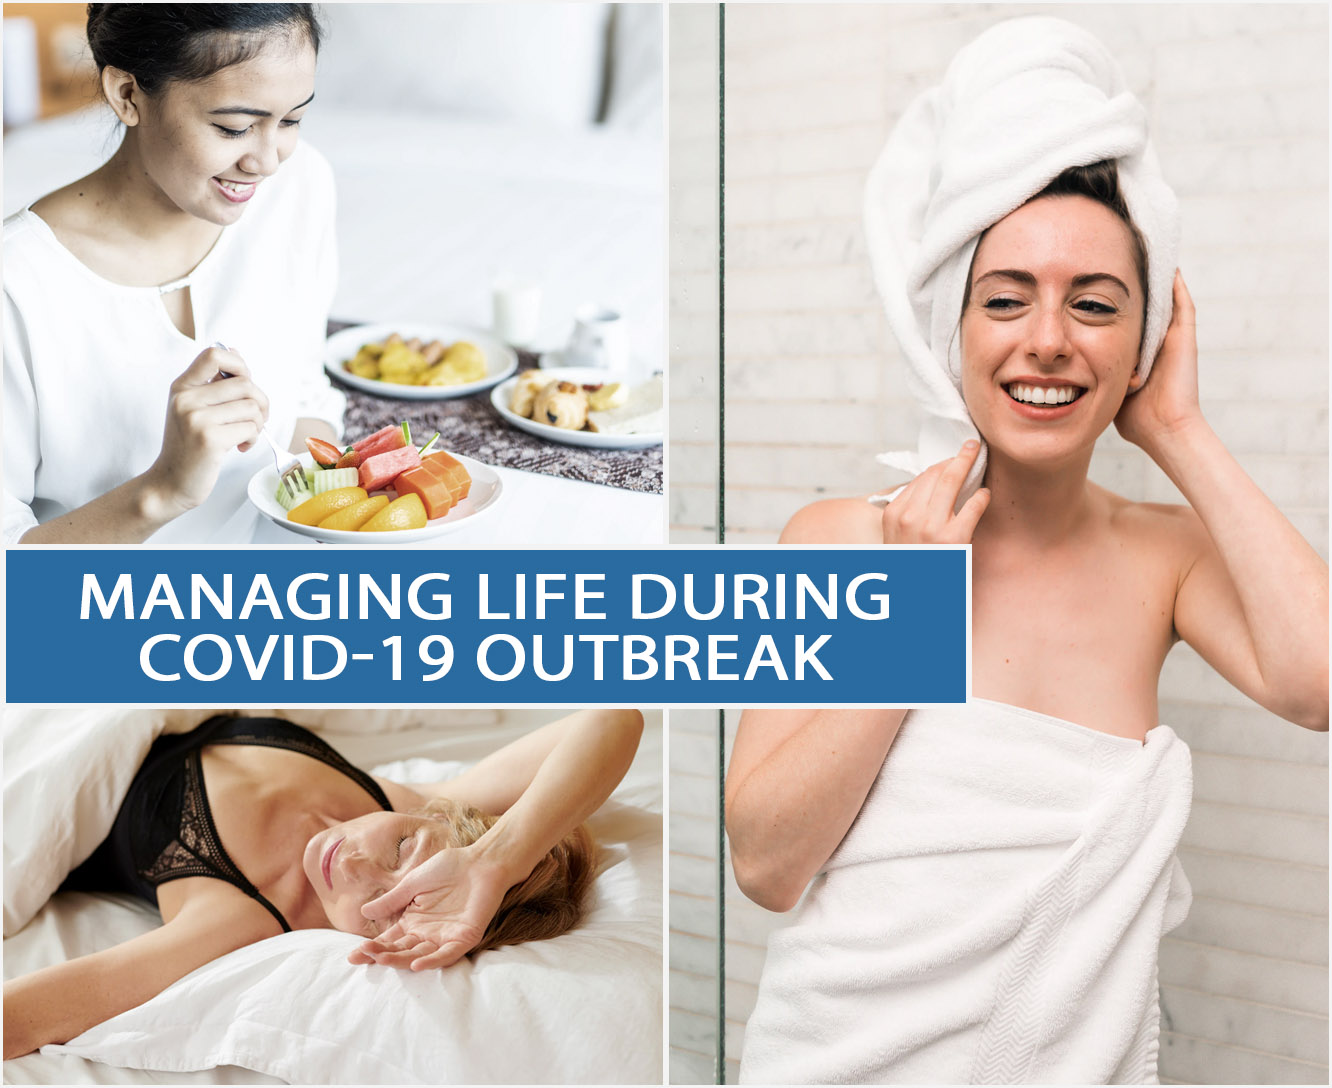 Managing Life During COVID-19 Outbreak